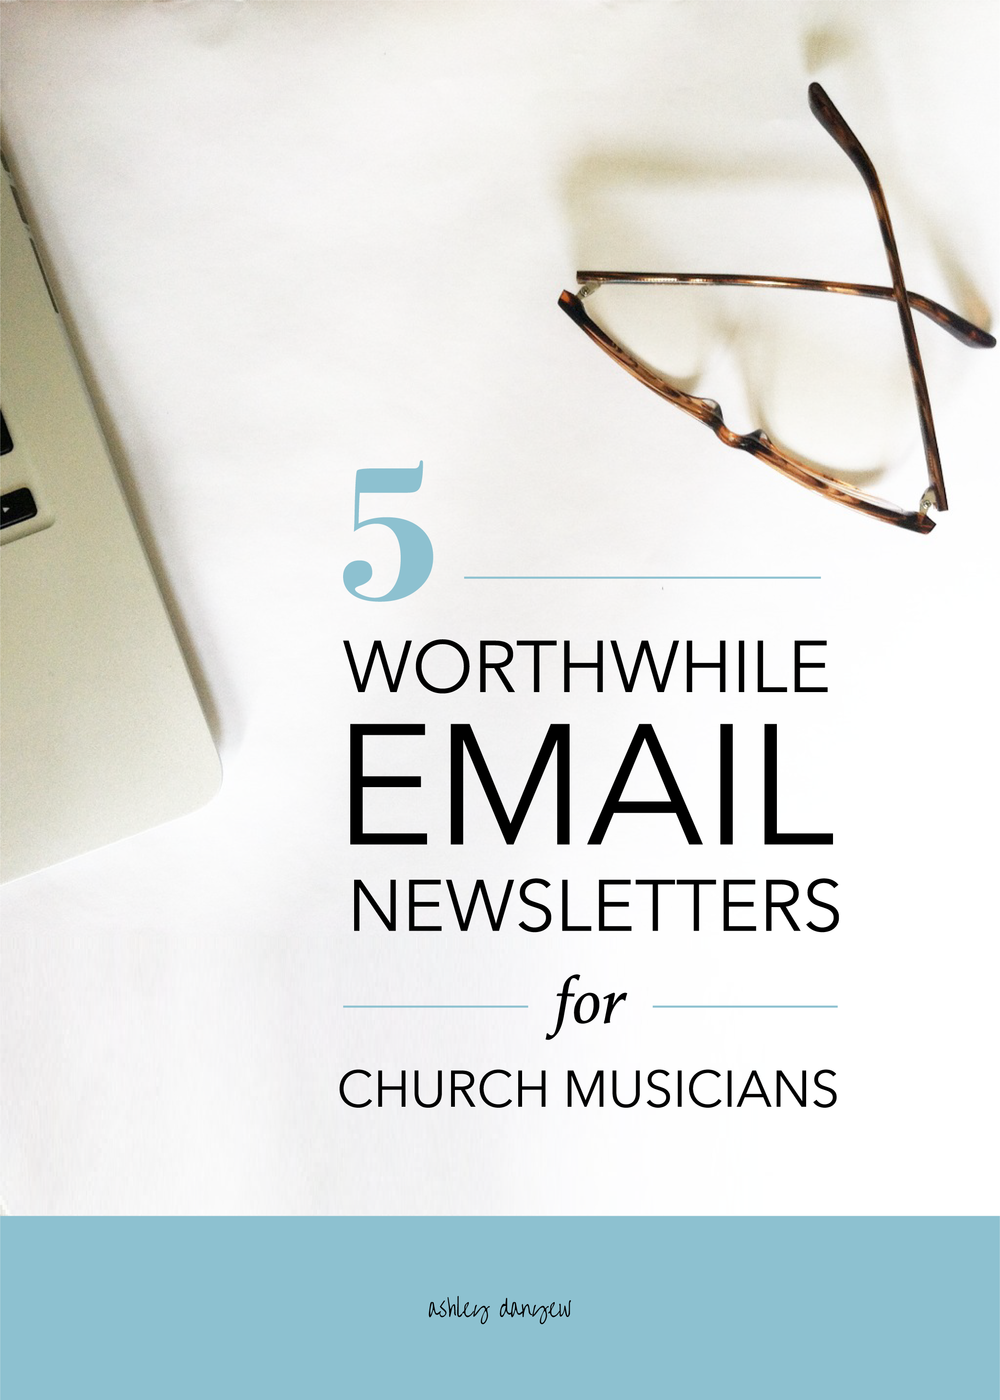 Copy of 5 Worthwhile Email Newsletters for Church Musicians